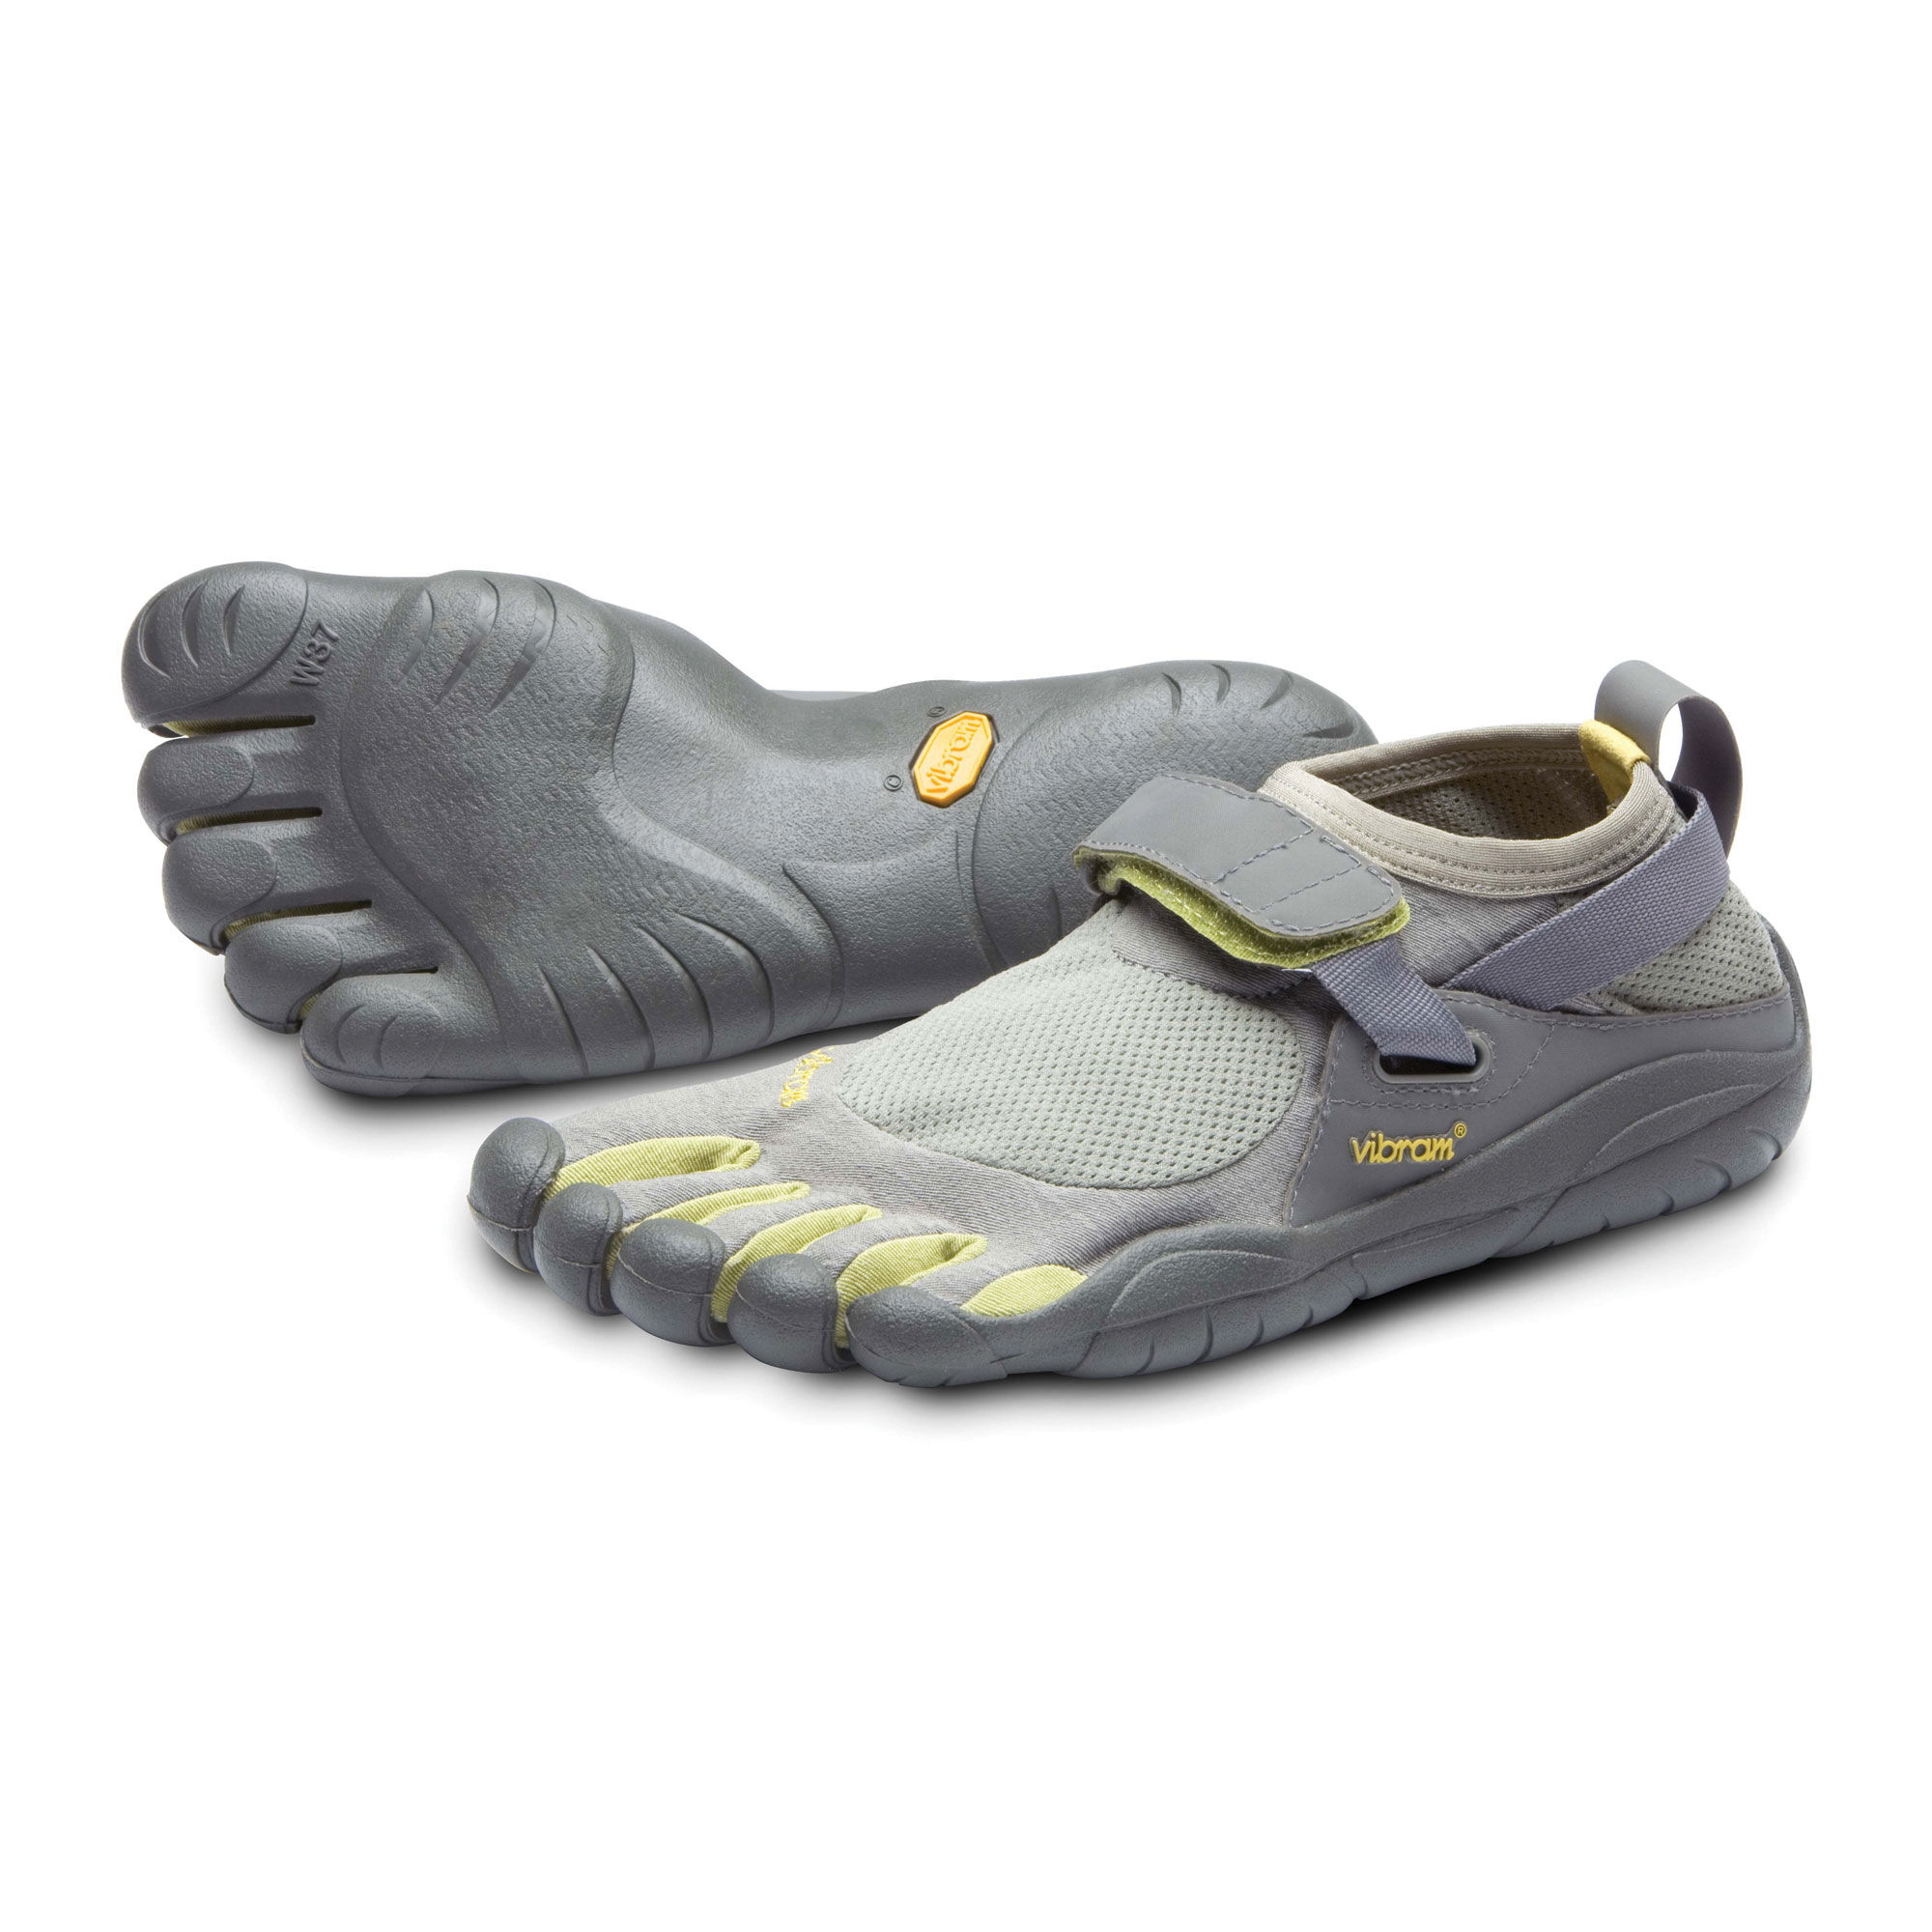 Vibram Womens FiveFingers VI-S Walking Shoes Sandals Grey Sports Outdoors